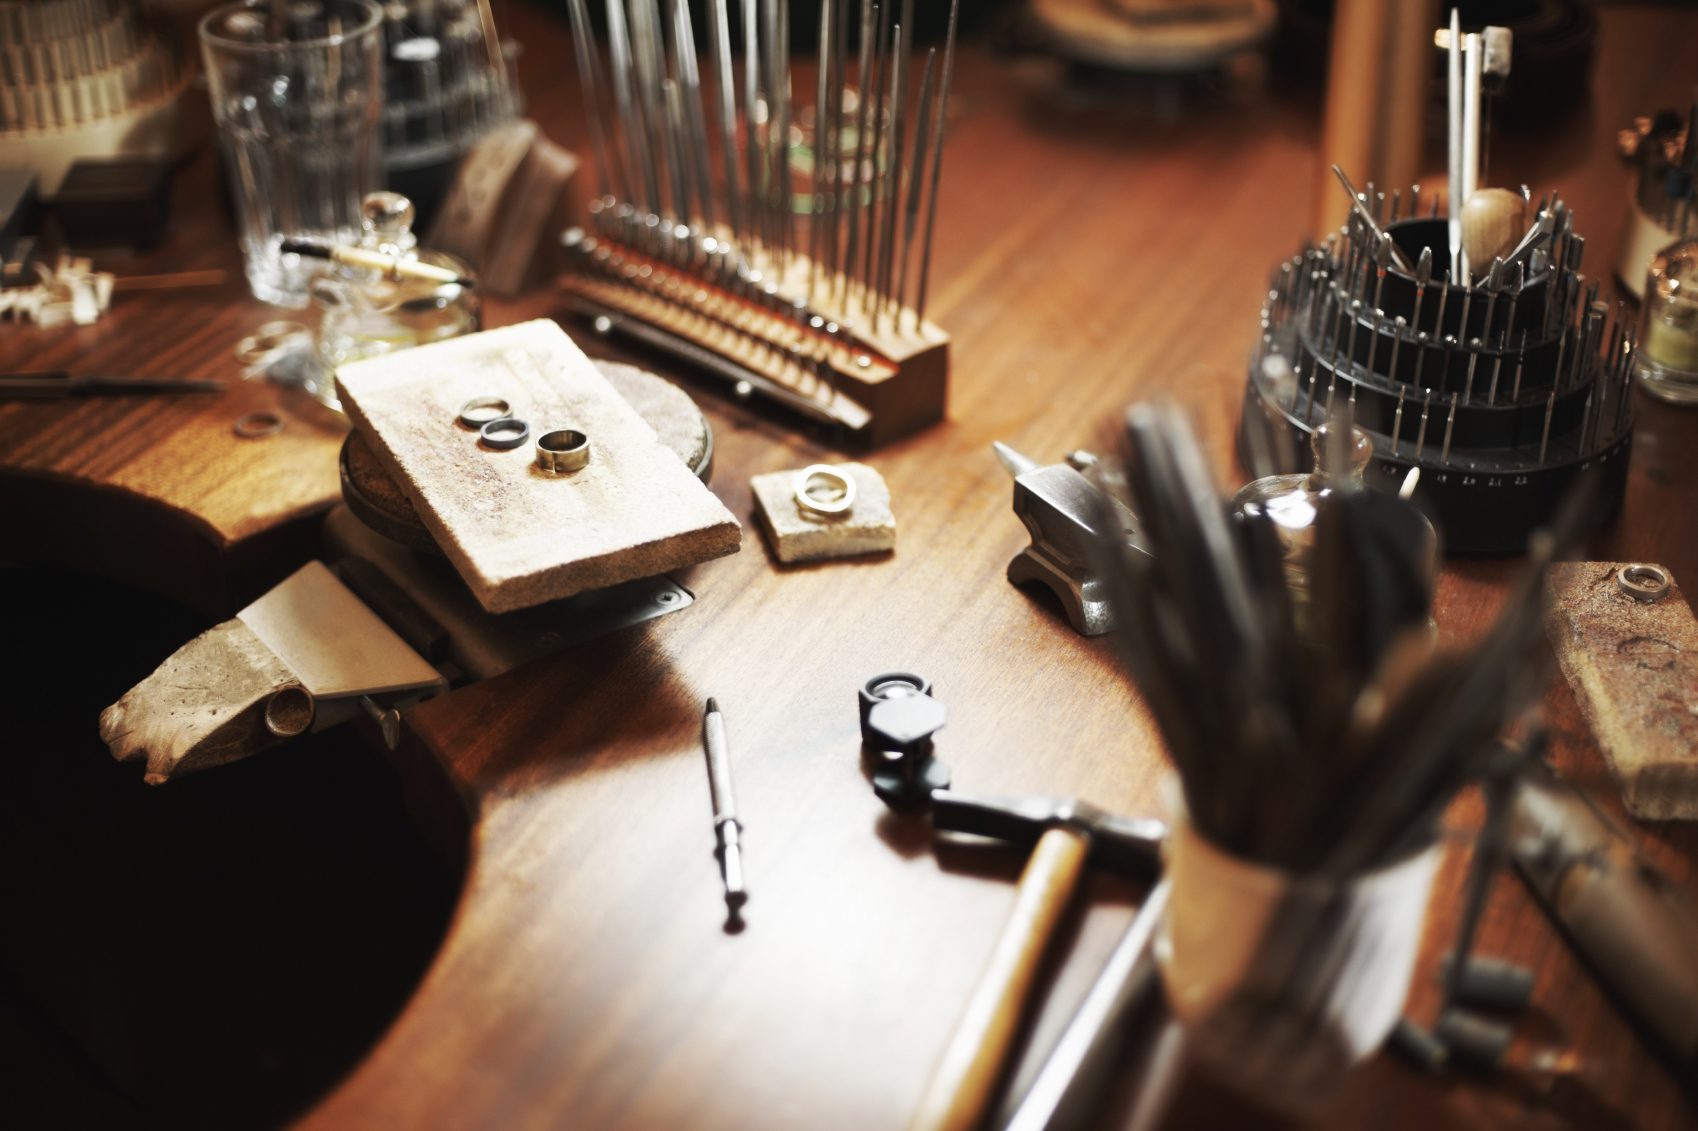 Variety of jeweler's tools in a workshop